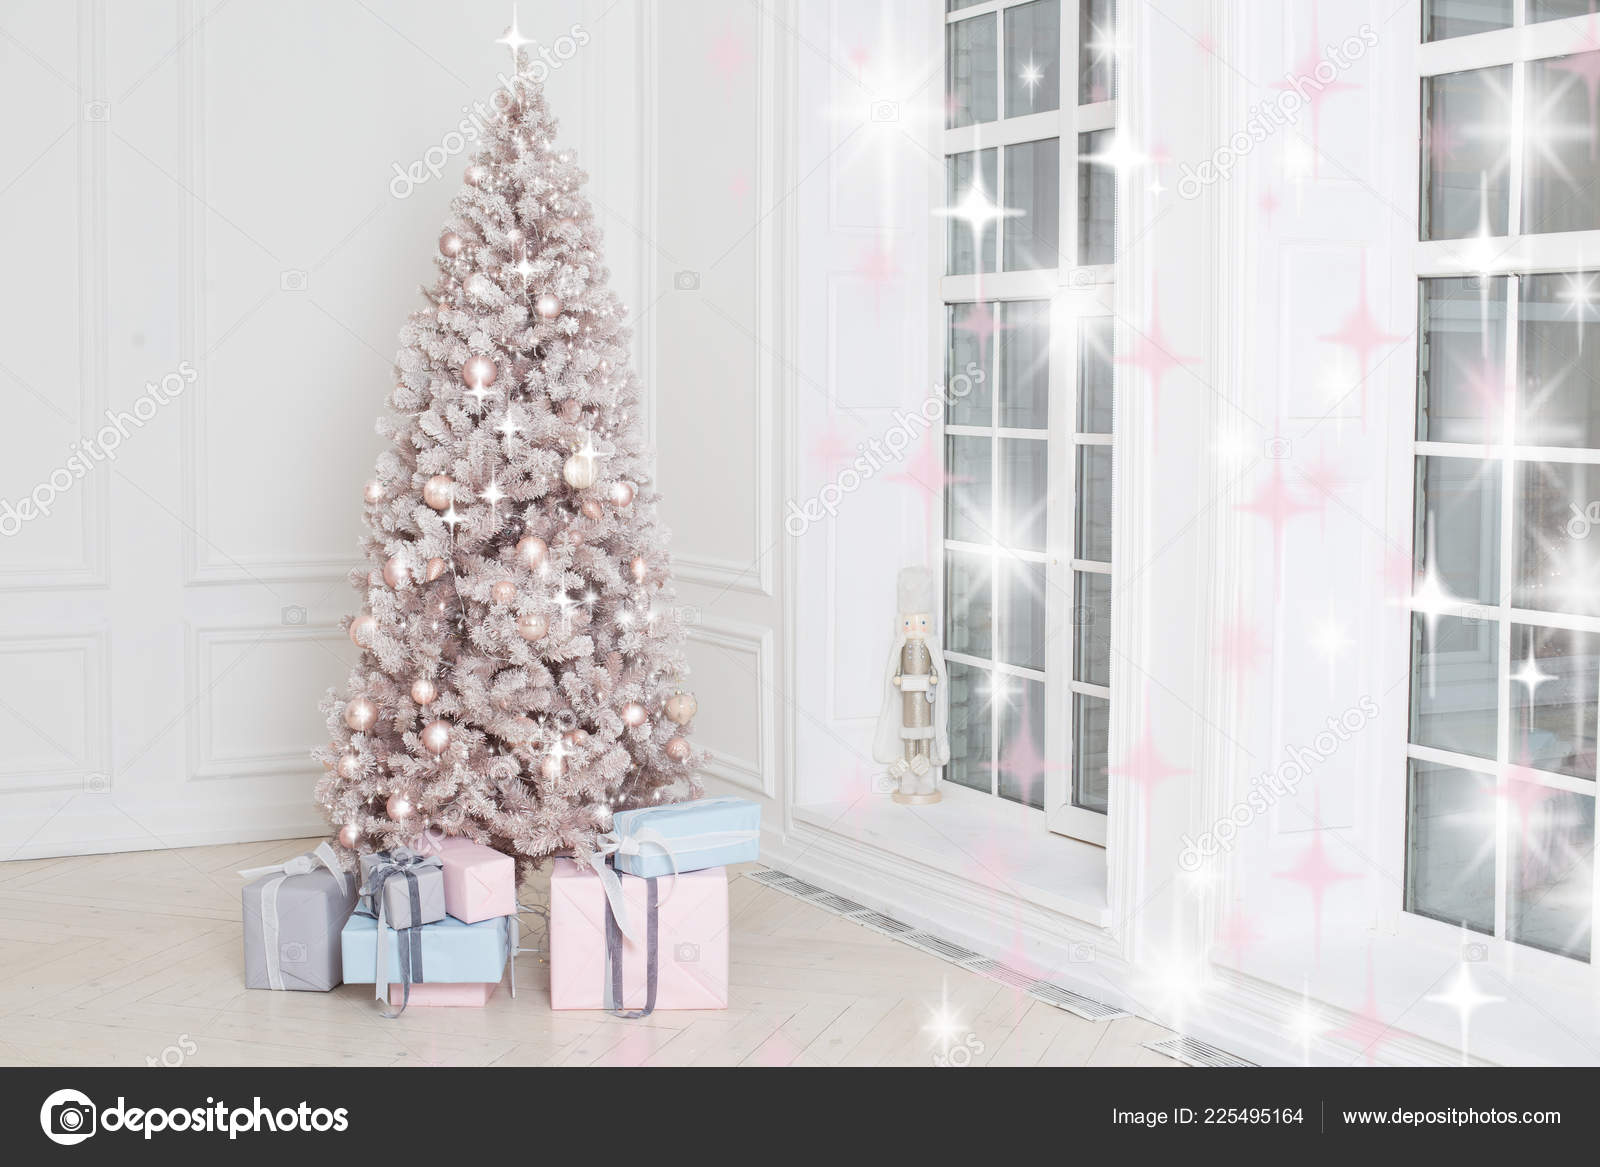 Beautiful Holiday Decorated Christmas Tree Presents White Silver Christmas Tree Stock Photo Image By C Ovcharenkoviktoria 225495164